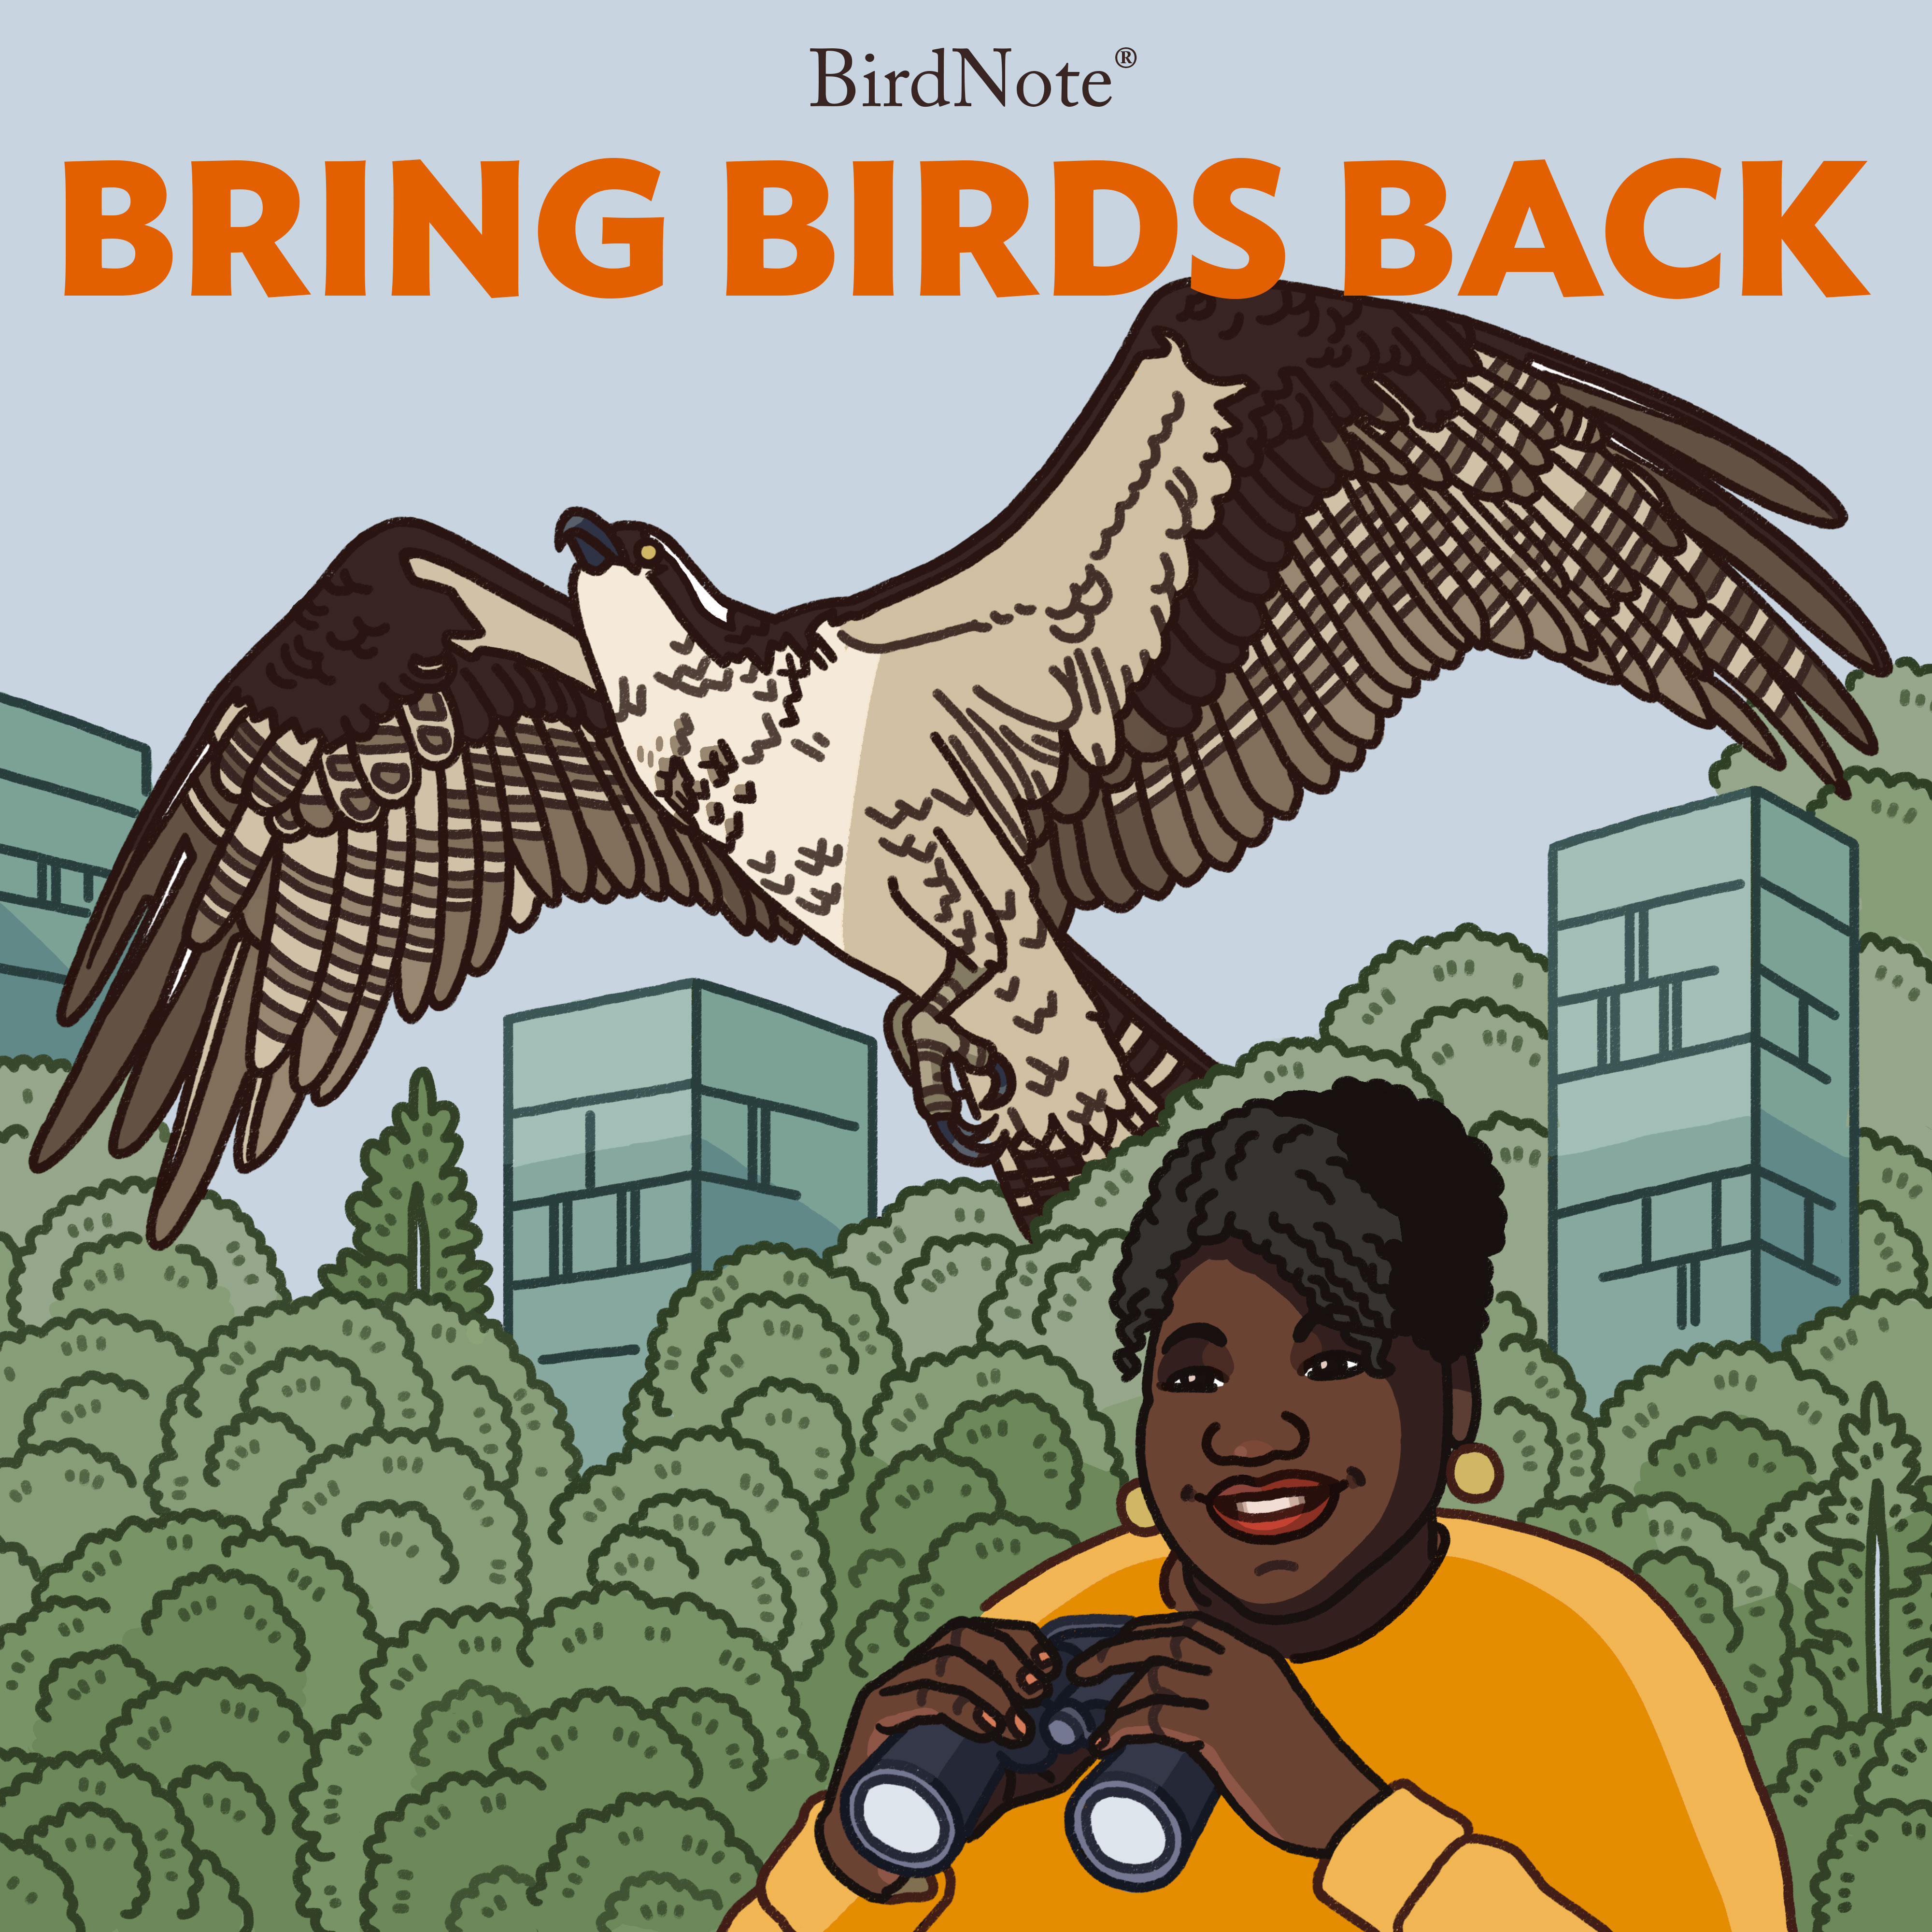 Caption: Illustration of a Baltimore Oriole, Osprey and American Tree Sparrow flying over our host, Tenijah Hamilton, smiling and holding binoculars, against a background of trees and tall buildings. , Credit: Hayden Maynard